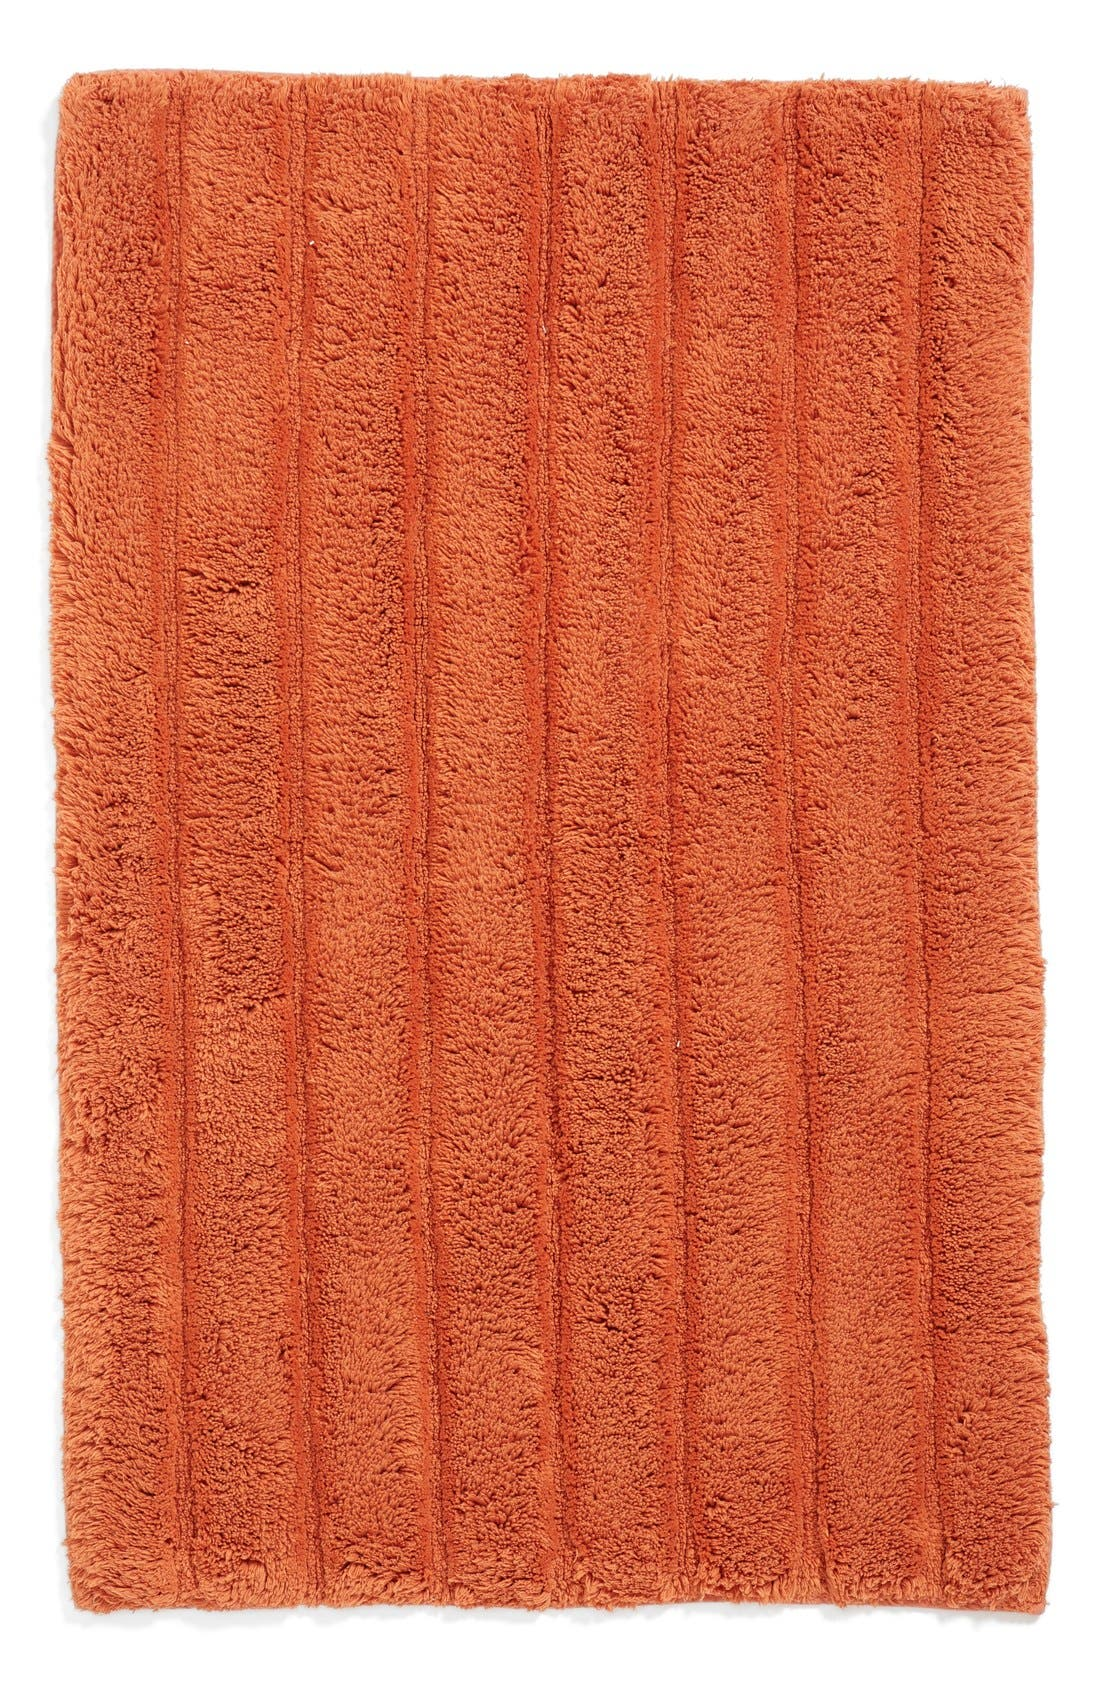 Ribbed Velour Bath Rug,                             Main thumbnail 8, color,